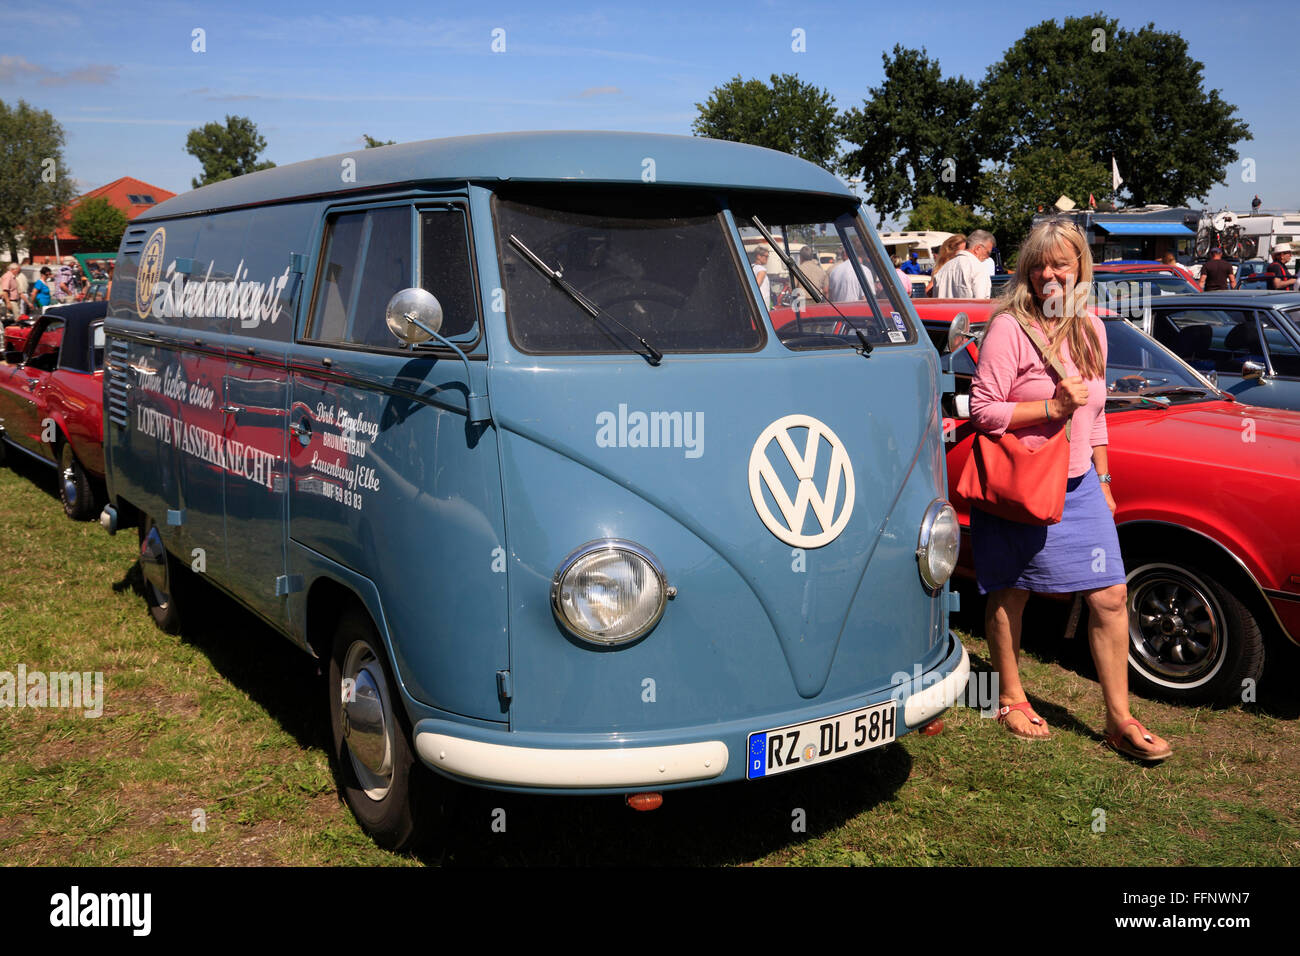 VW-Bus, Oldtimer meeting, Bleckede / Elbe, Lower Saxony, Germany, Europe - Stock Image